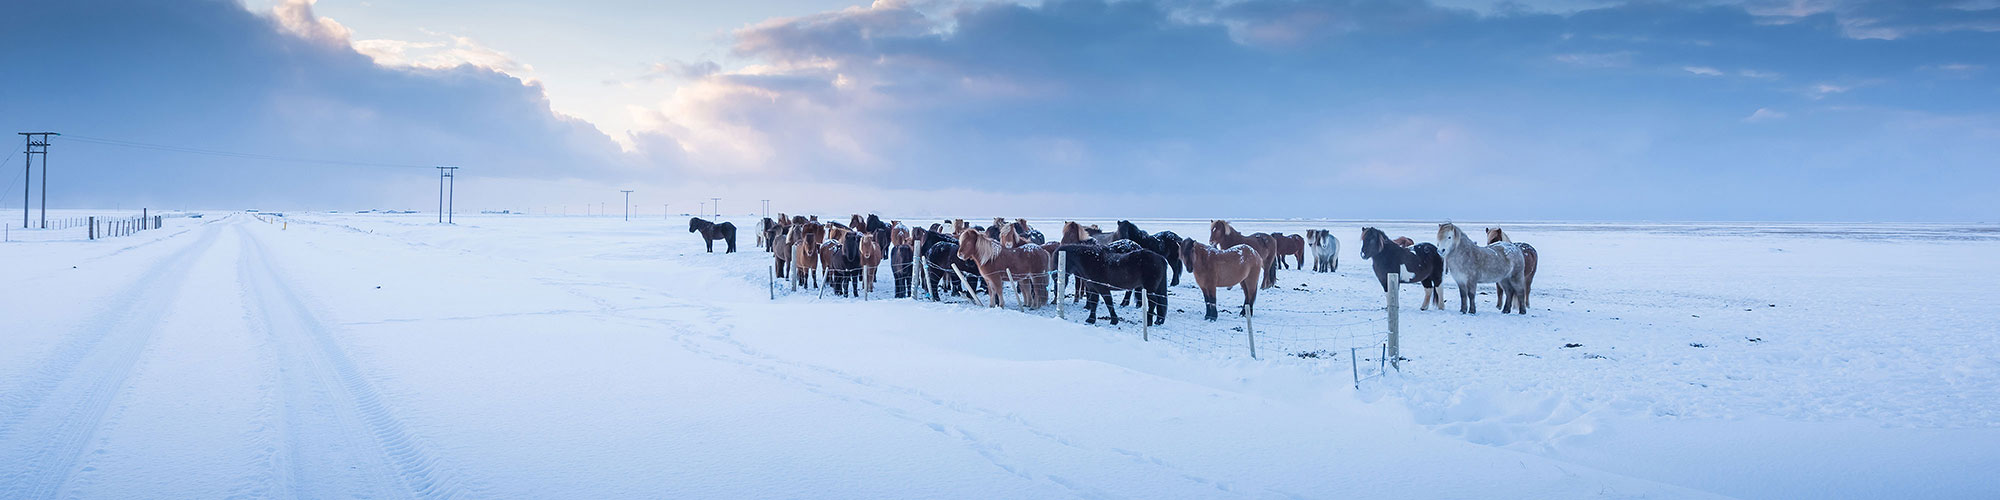 Icelandic Horses in Iceland Near Snow Covered Road